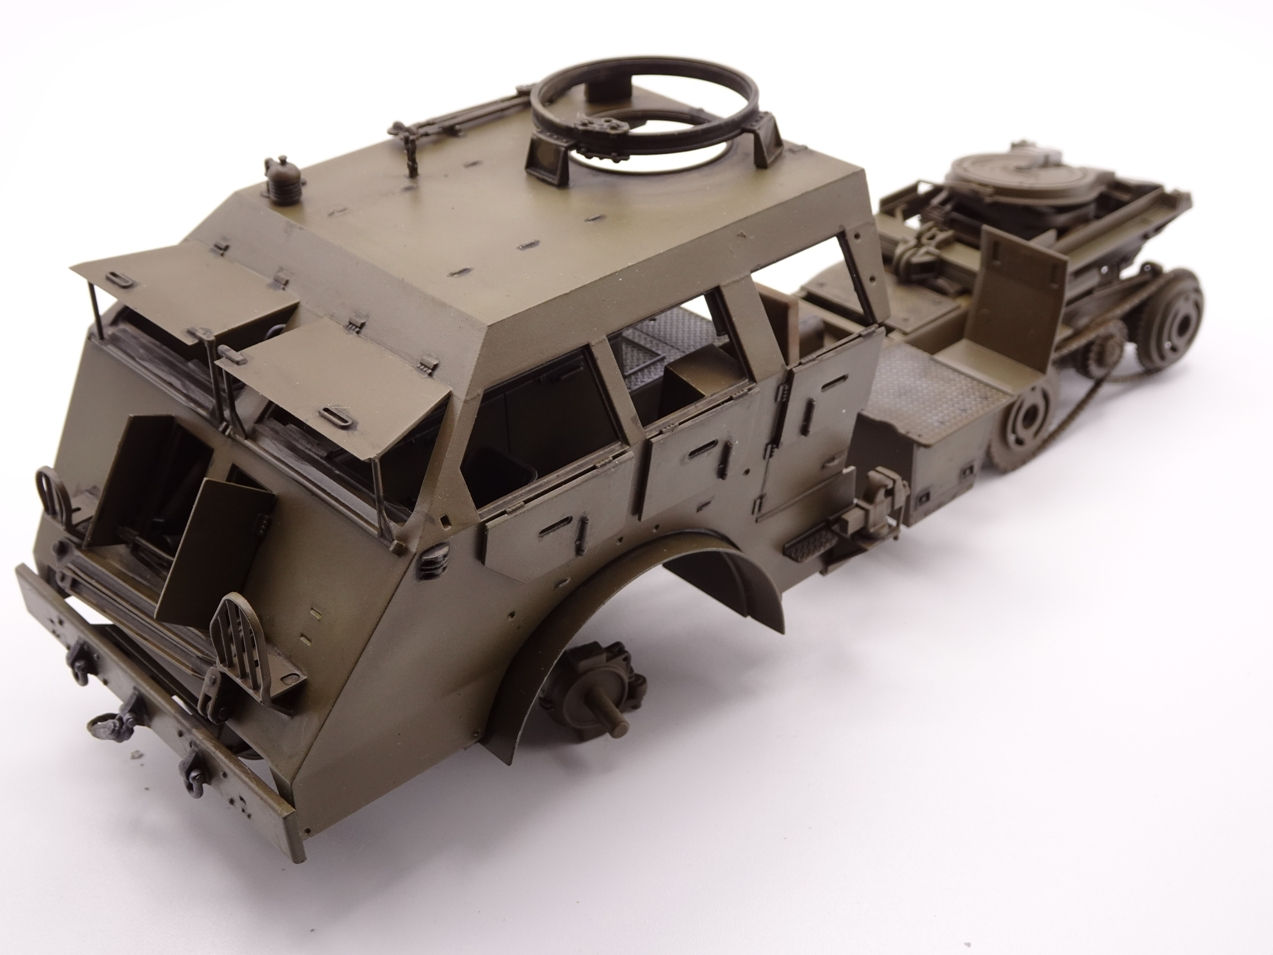 [Tamiya 1/35] M26 Armored tank recovery vehicle réf. 35244 - Page 2 M26-1110-9